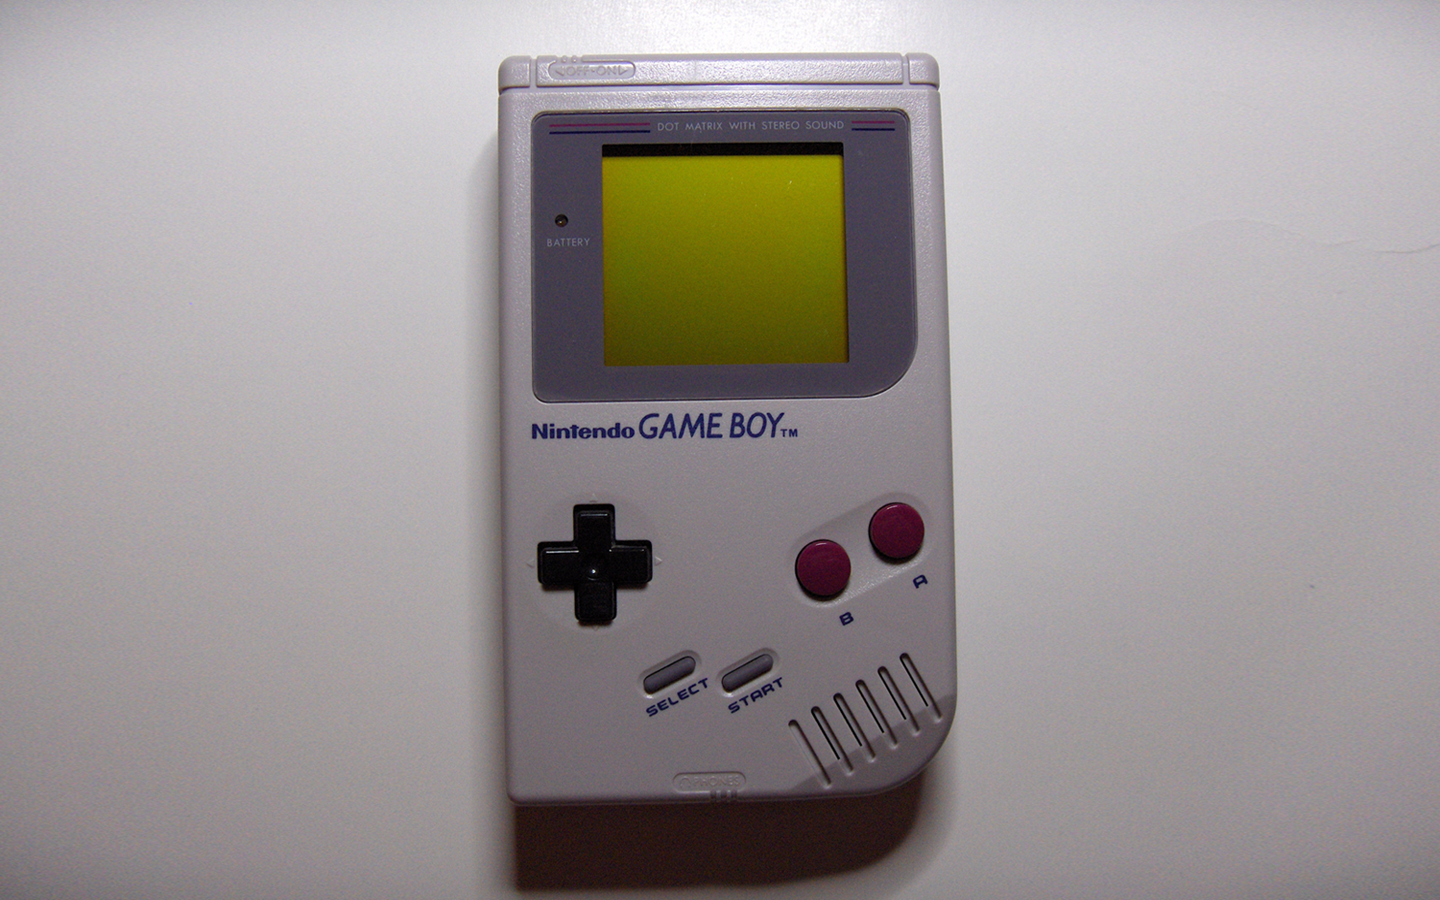 Gameboy Wallpaper 1440x900 Gameboy 1440x900